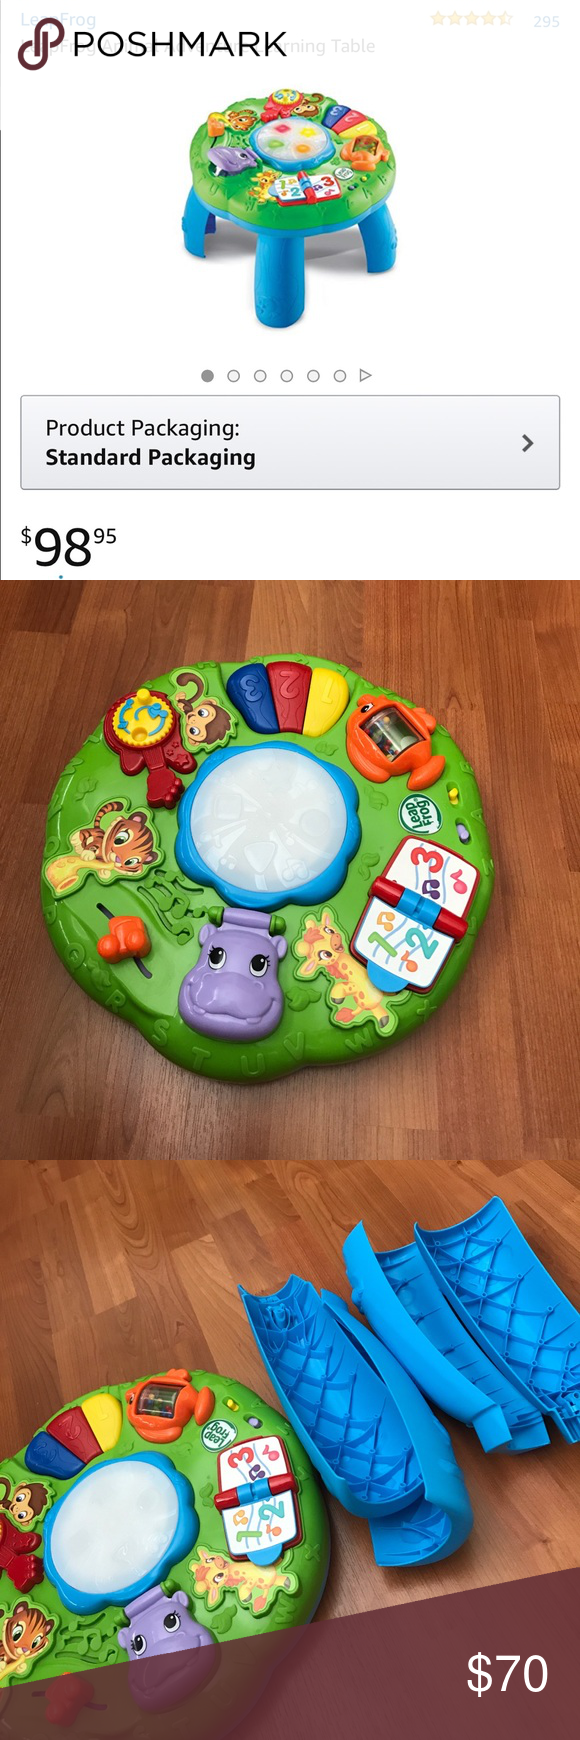 Leapfrog Animal Adventure Learning Table Barely Used Perfect